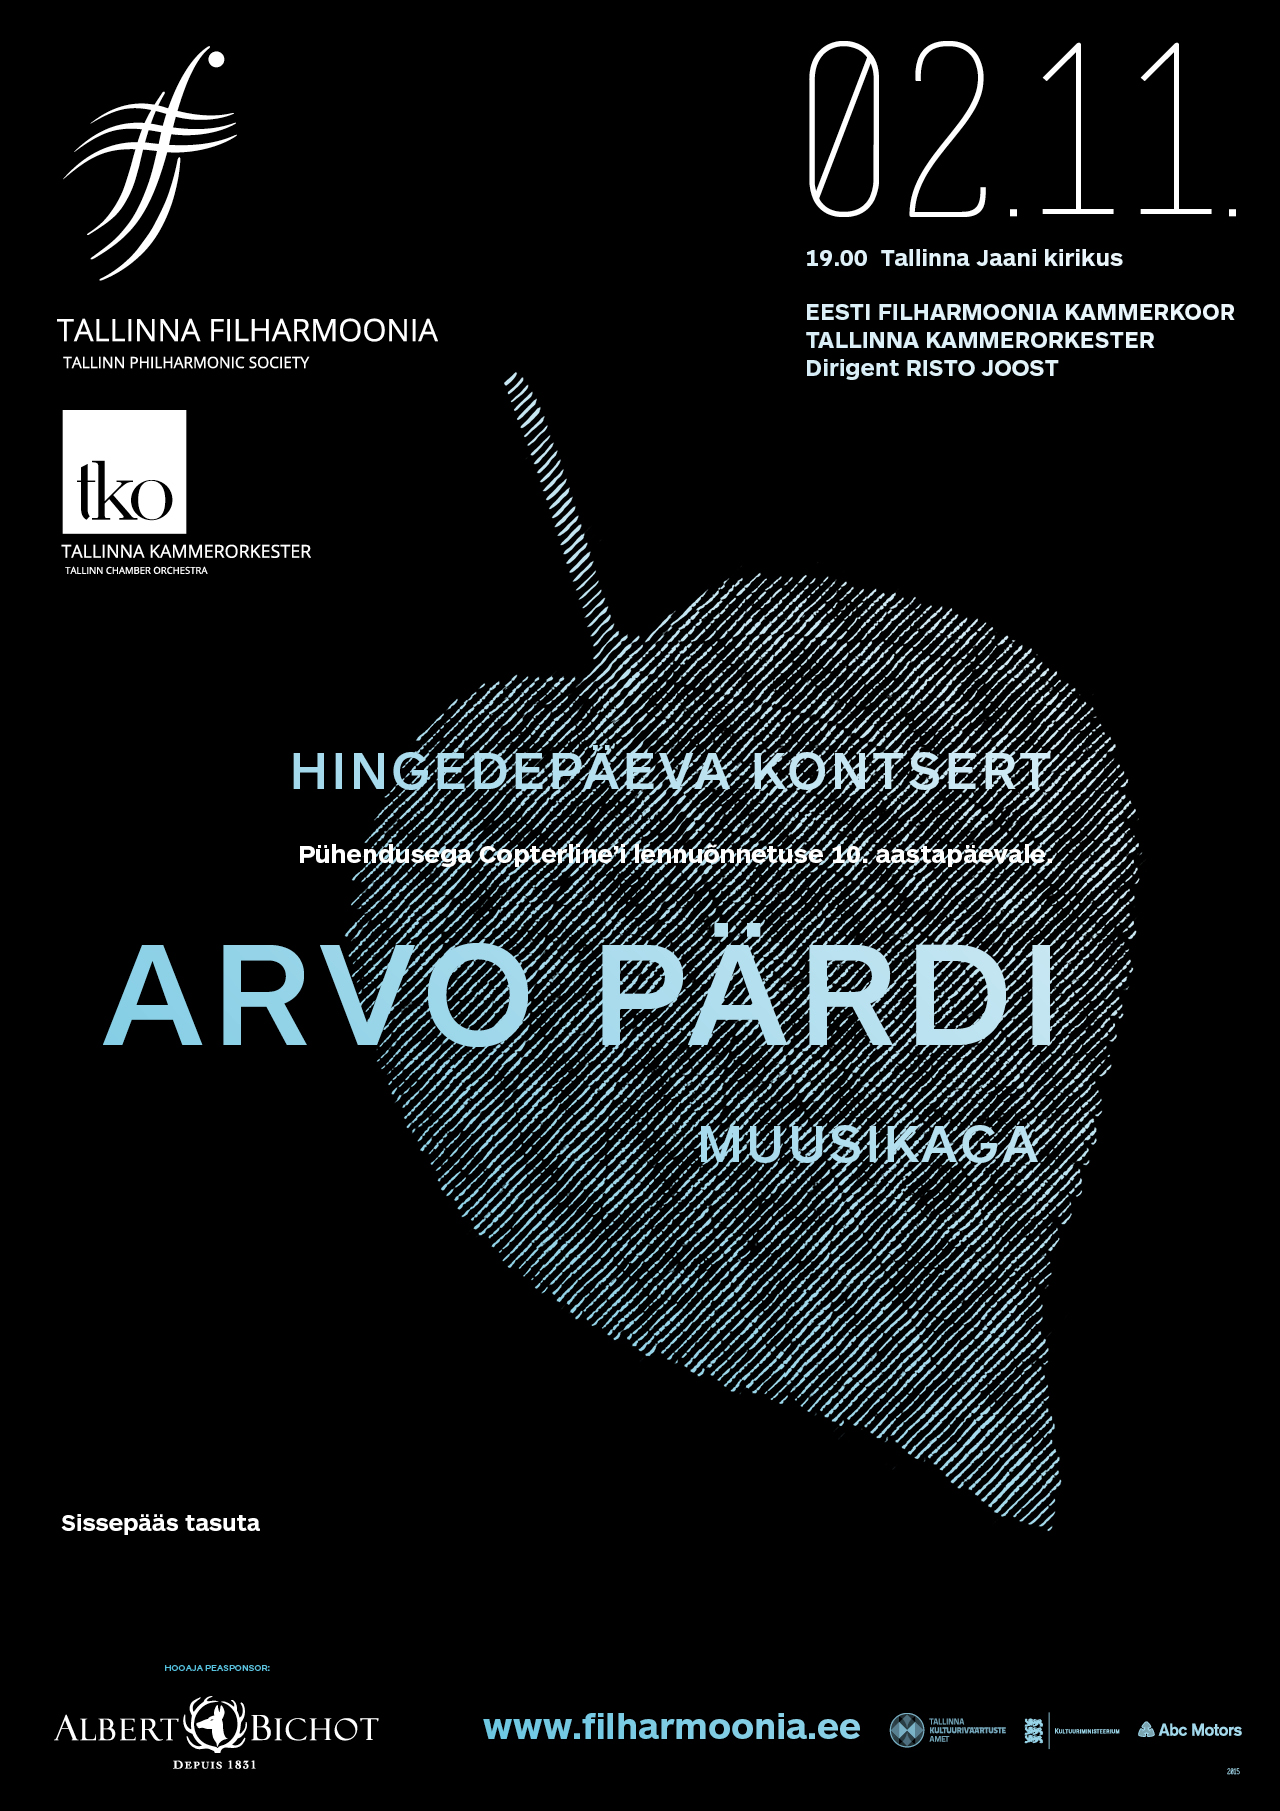 ALL SOULS' DAY CONCERT WITH ARVO PÄRT'S MUSIC